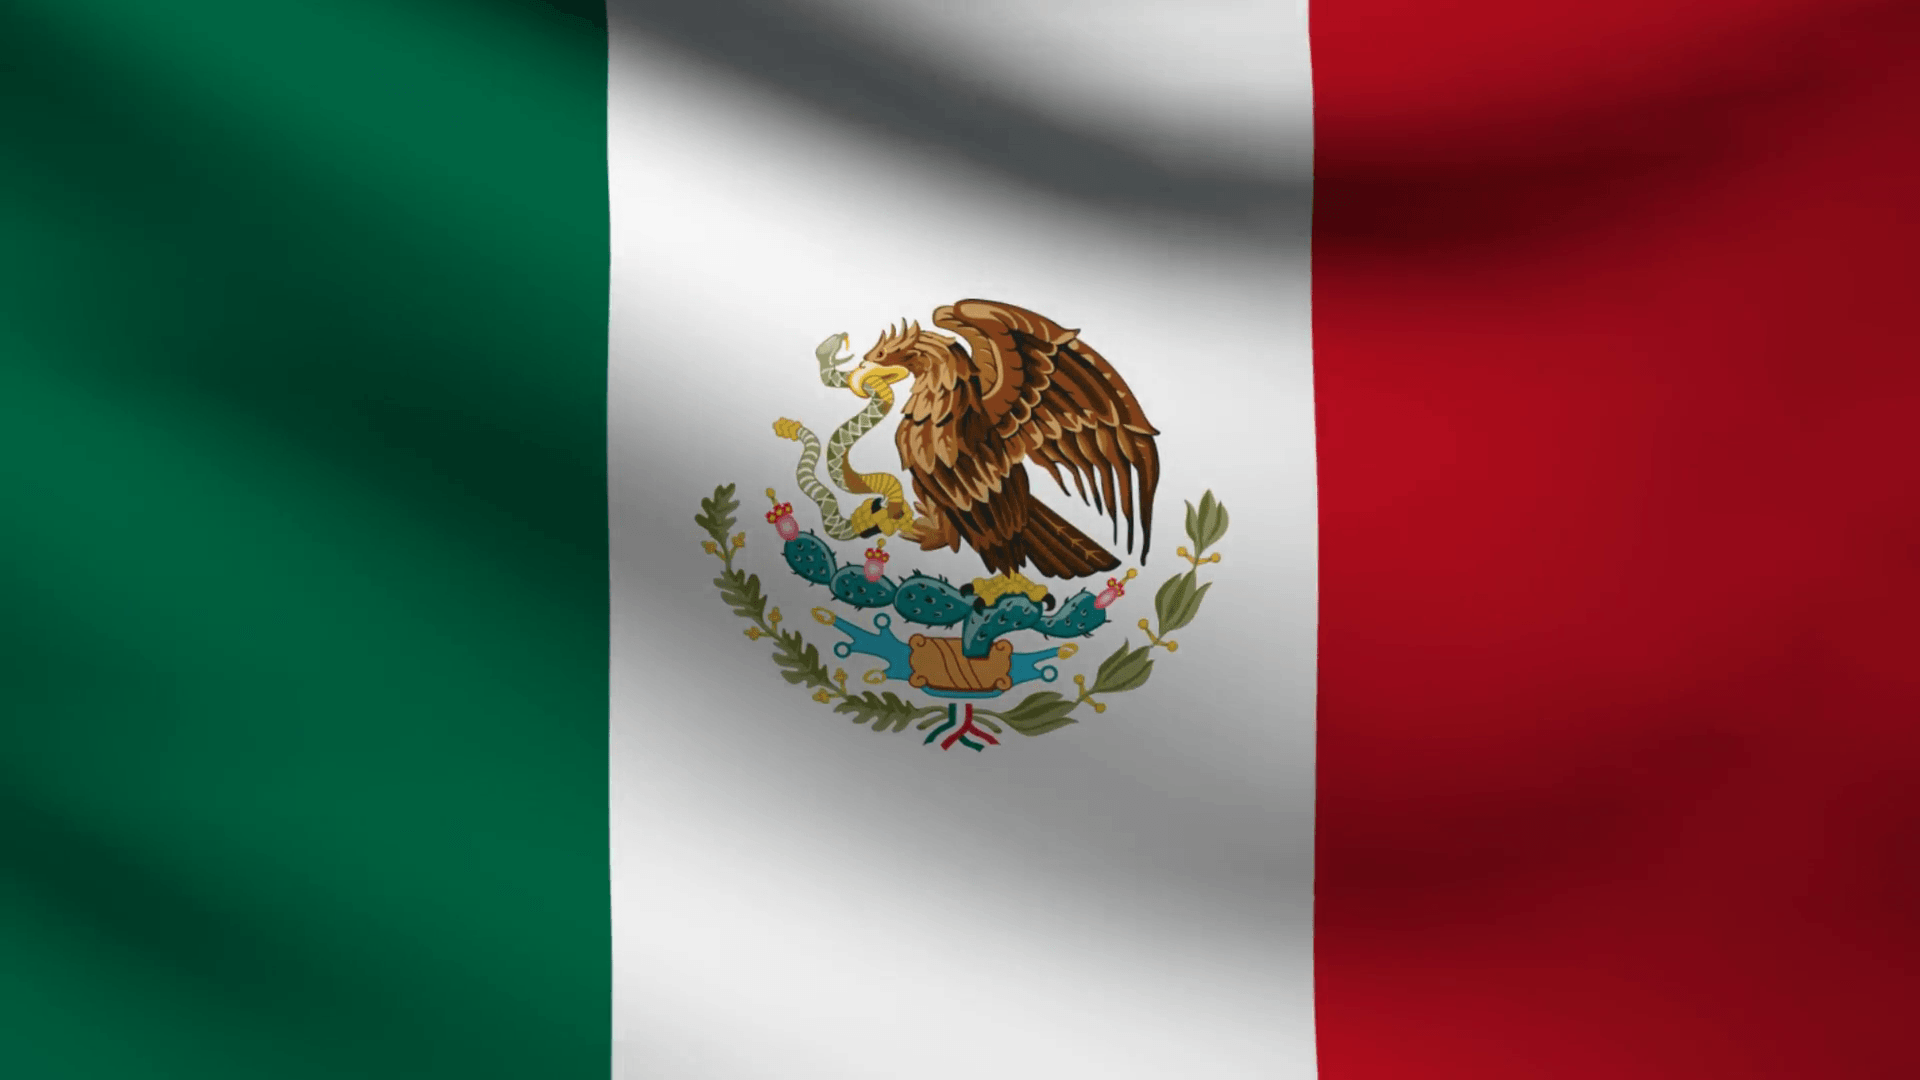 New Pic Of Mexico Flag Image YouTube